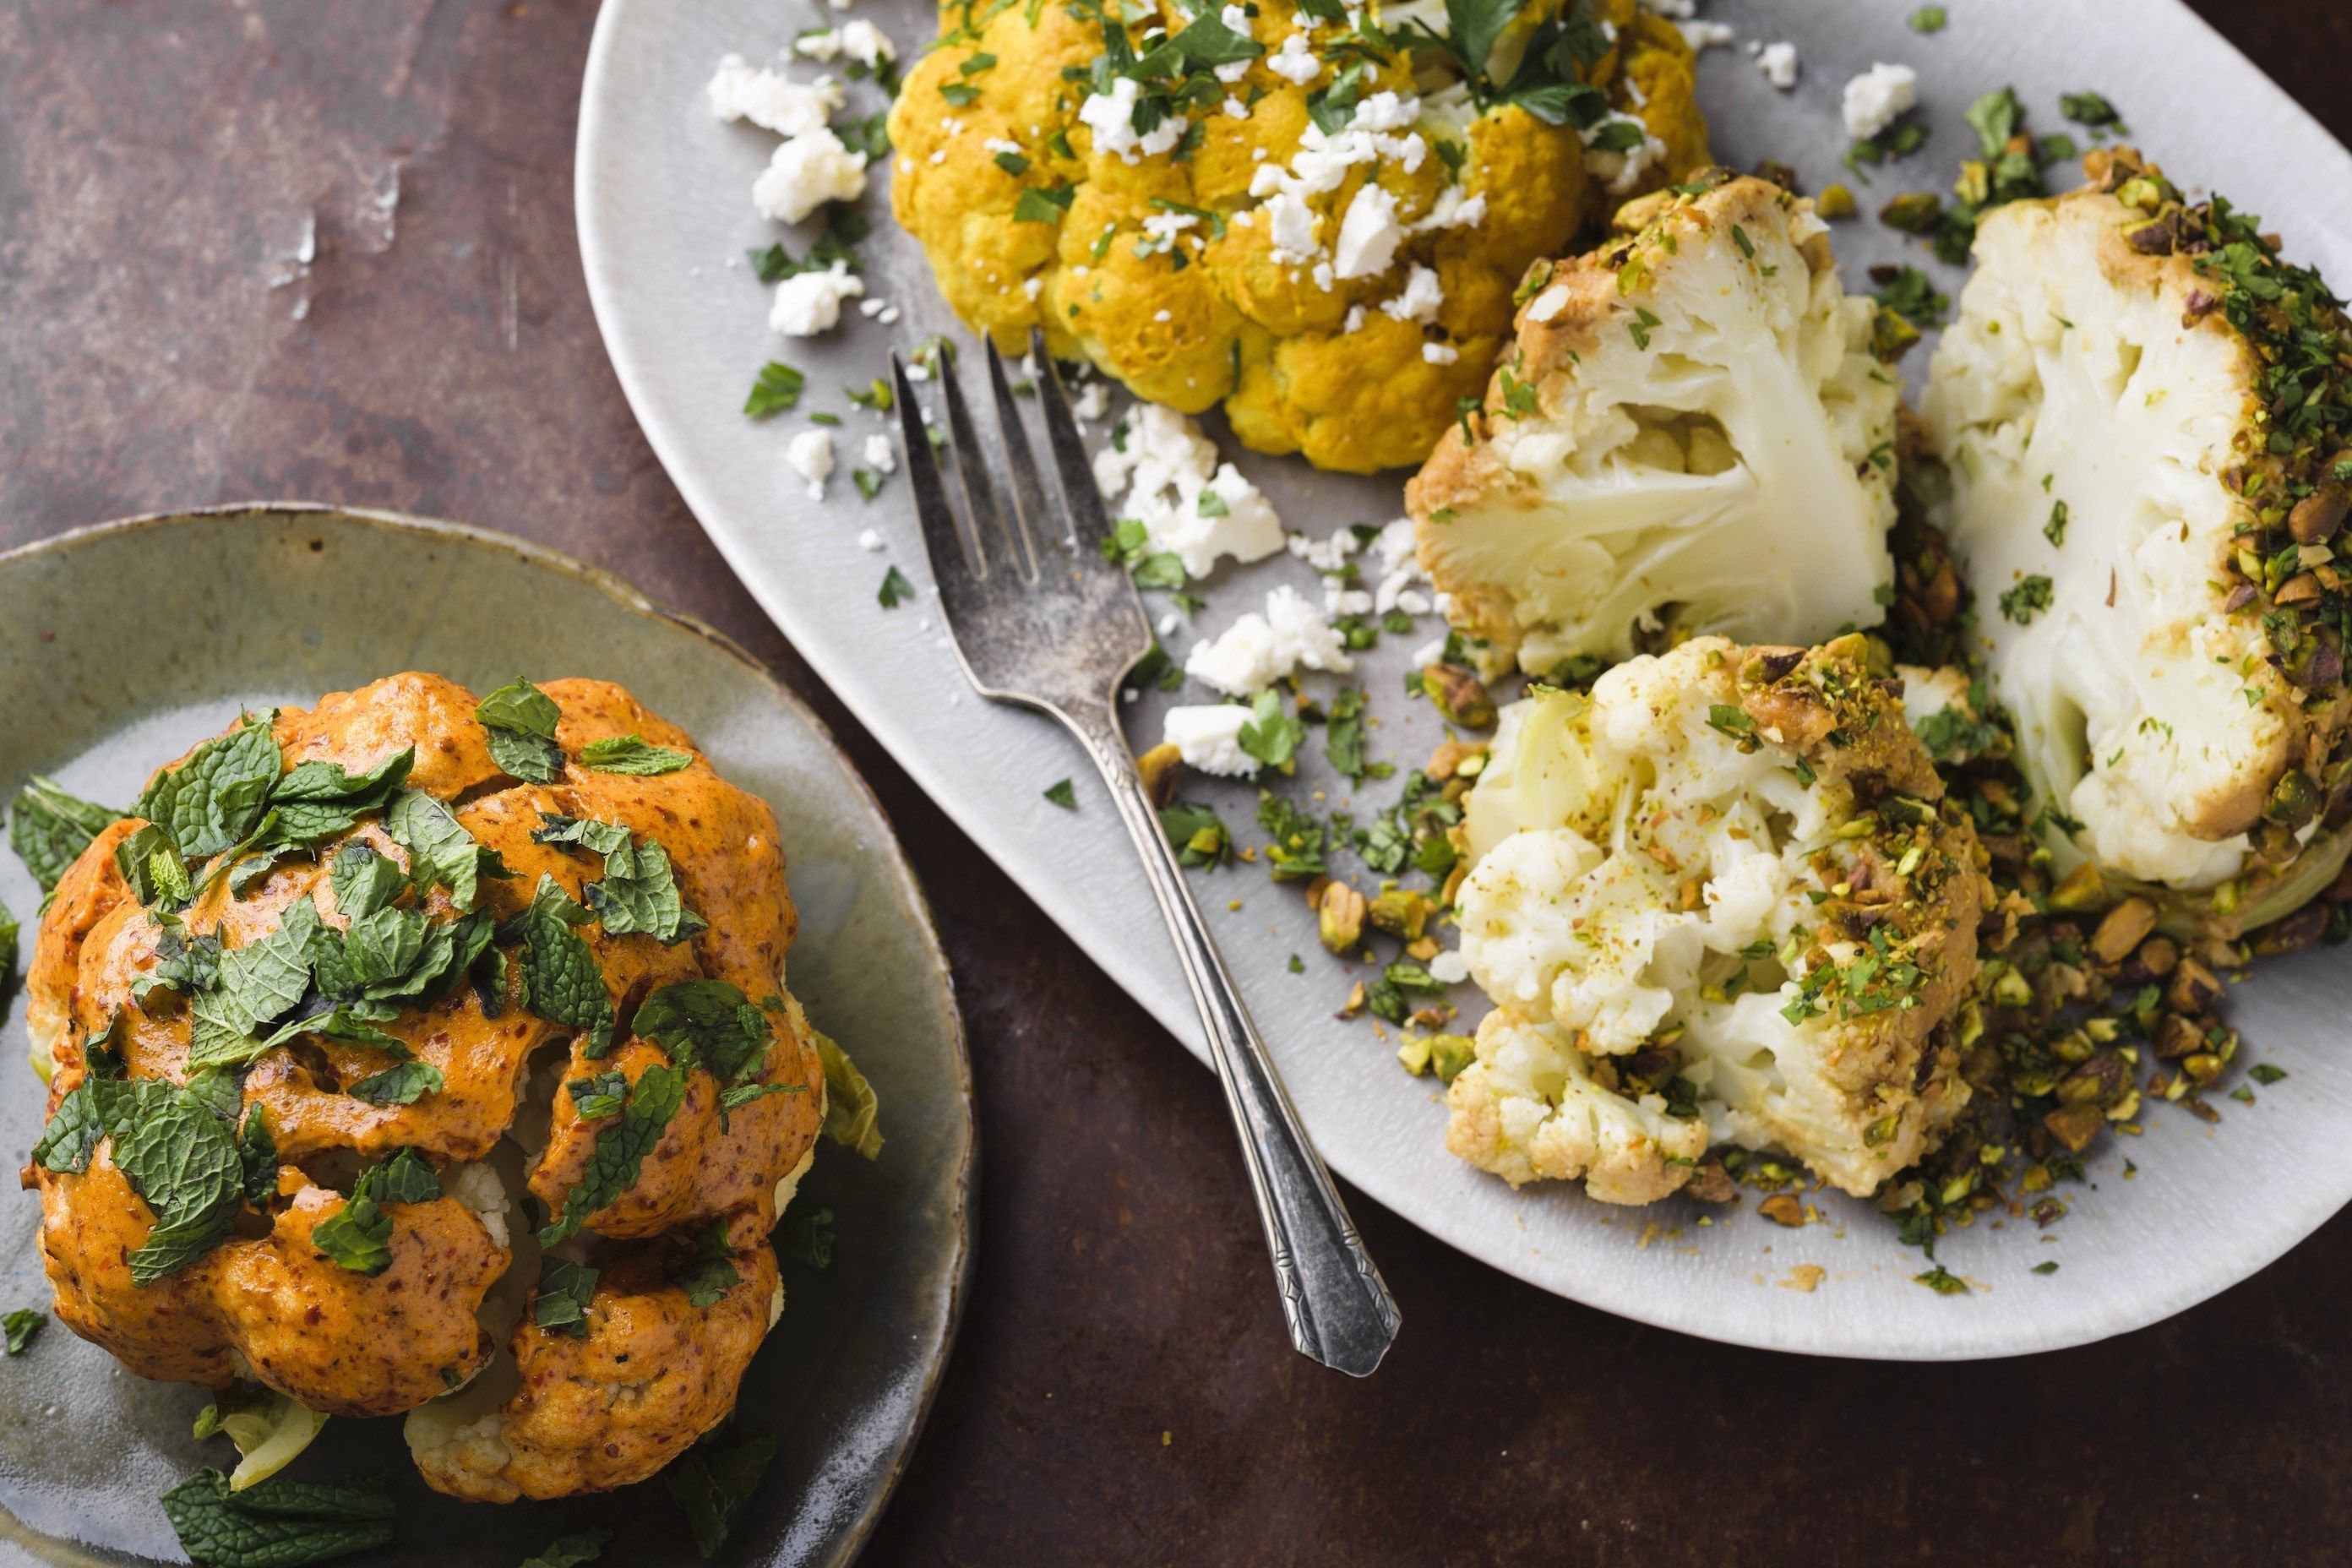 Steamed Whole Cauliflower